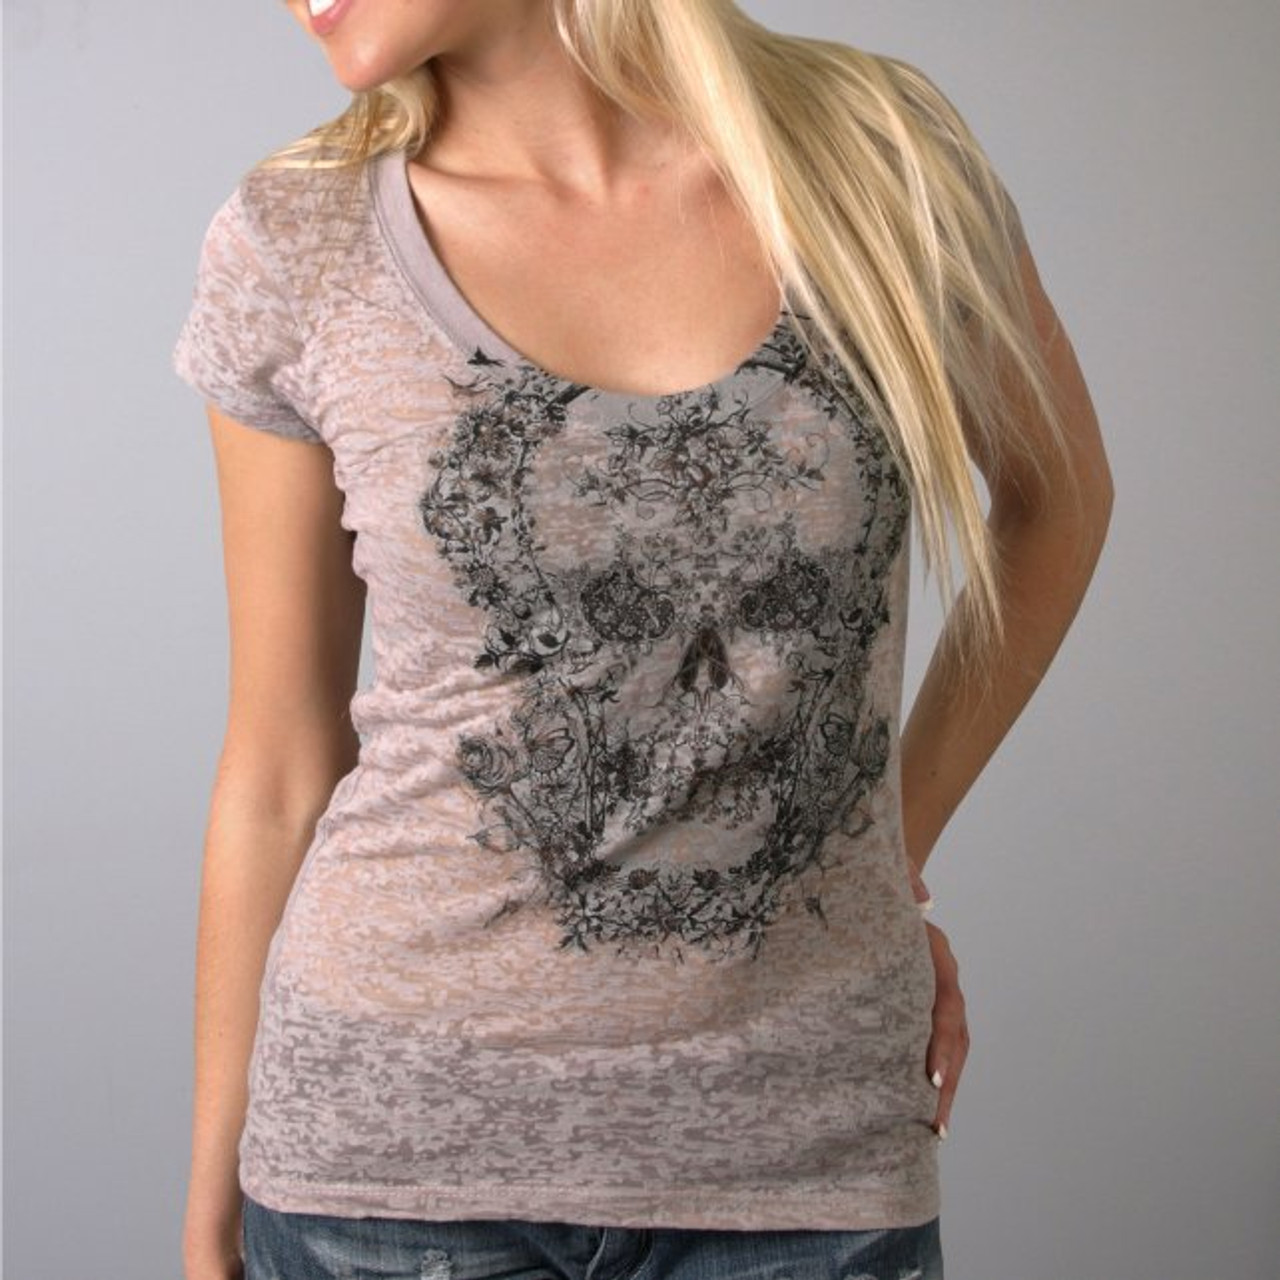 d21bbe32a23 Ladies Victorian Skull Scoopneck Burnout Tee - Rider 2 Rider Store